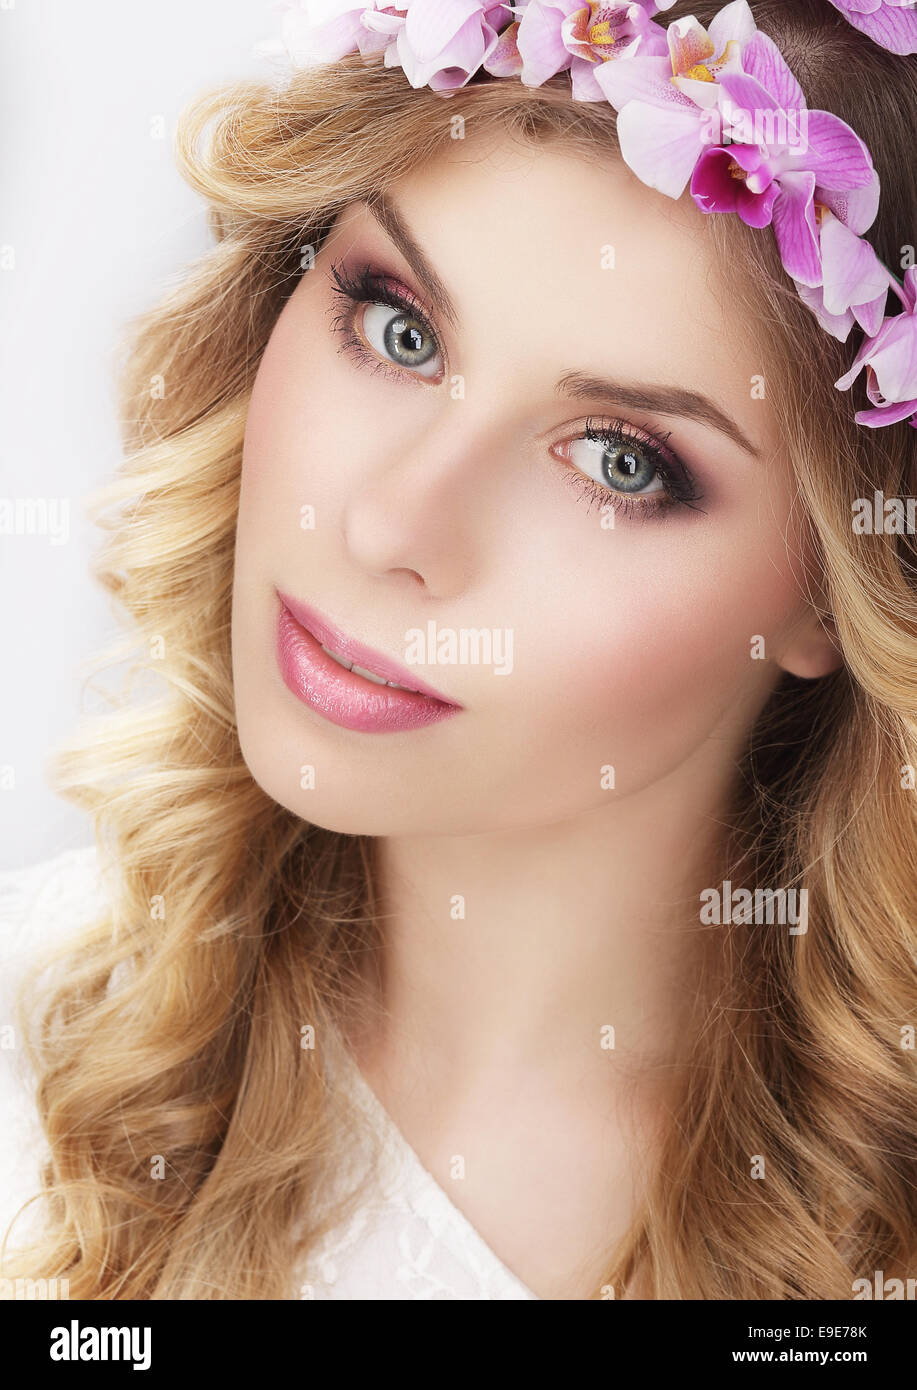 Charming Girl in Wreath of Flowers - Stock Image